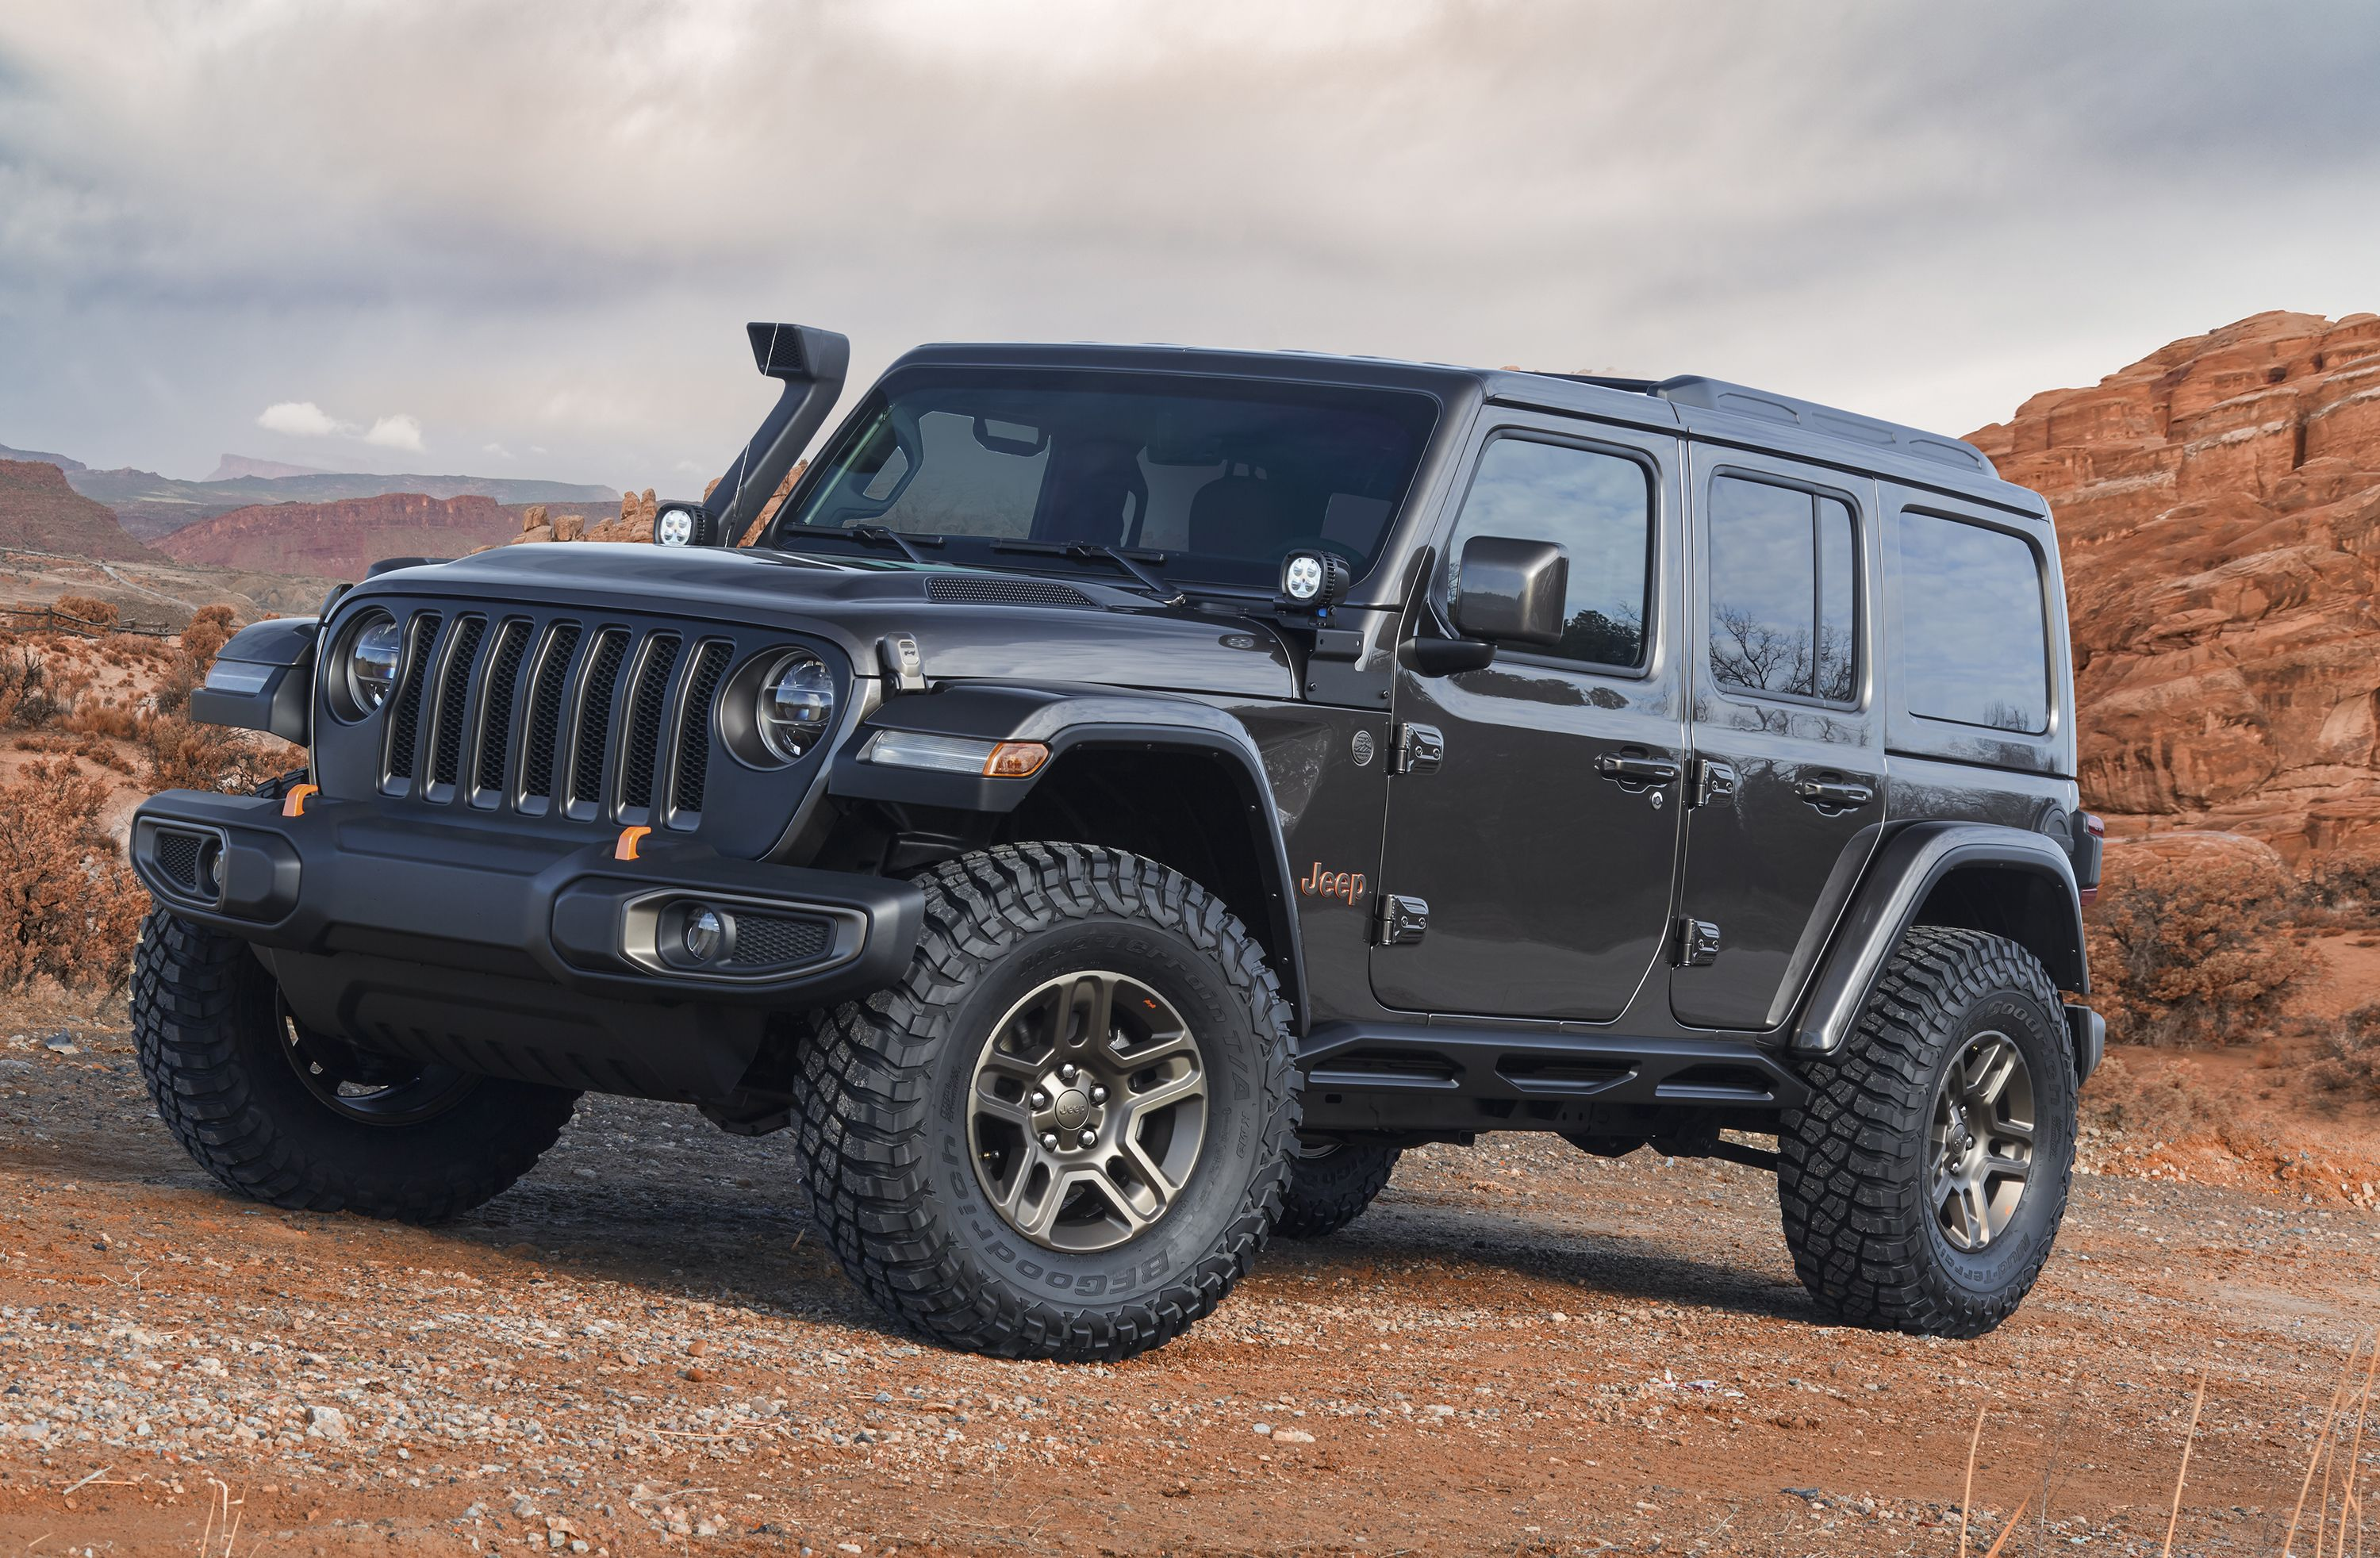 Check Out These Rad Jeep Concepts For The 2018 Easter Safari Power Wheels Wrangler Parts Diagram